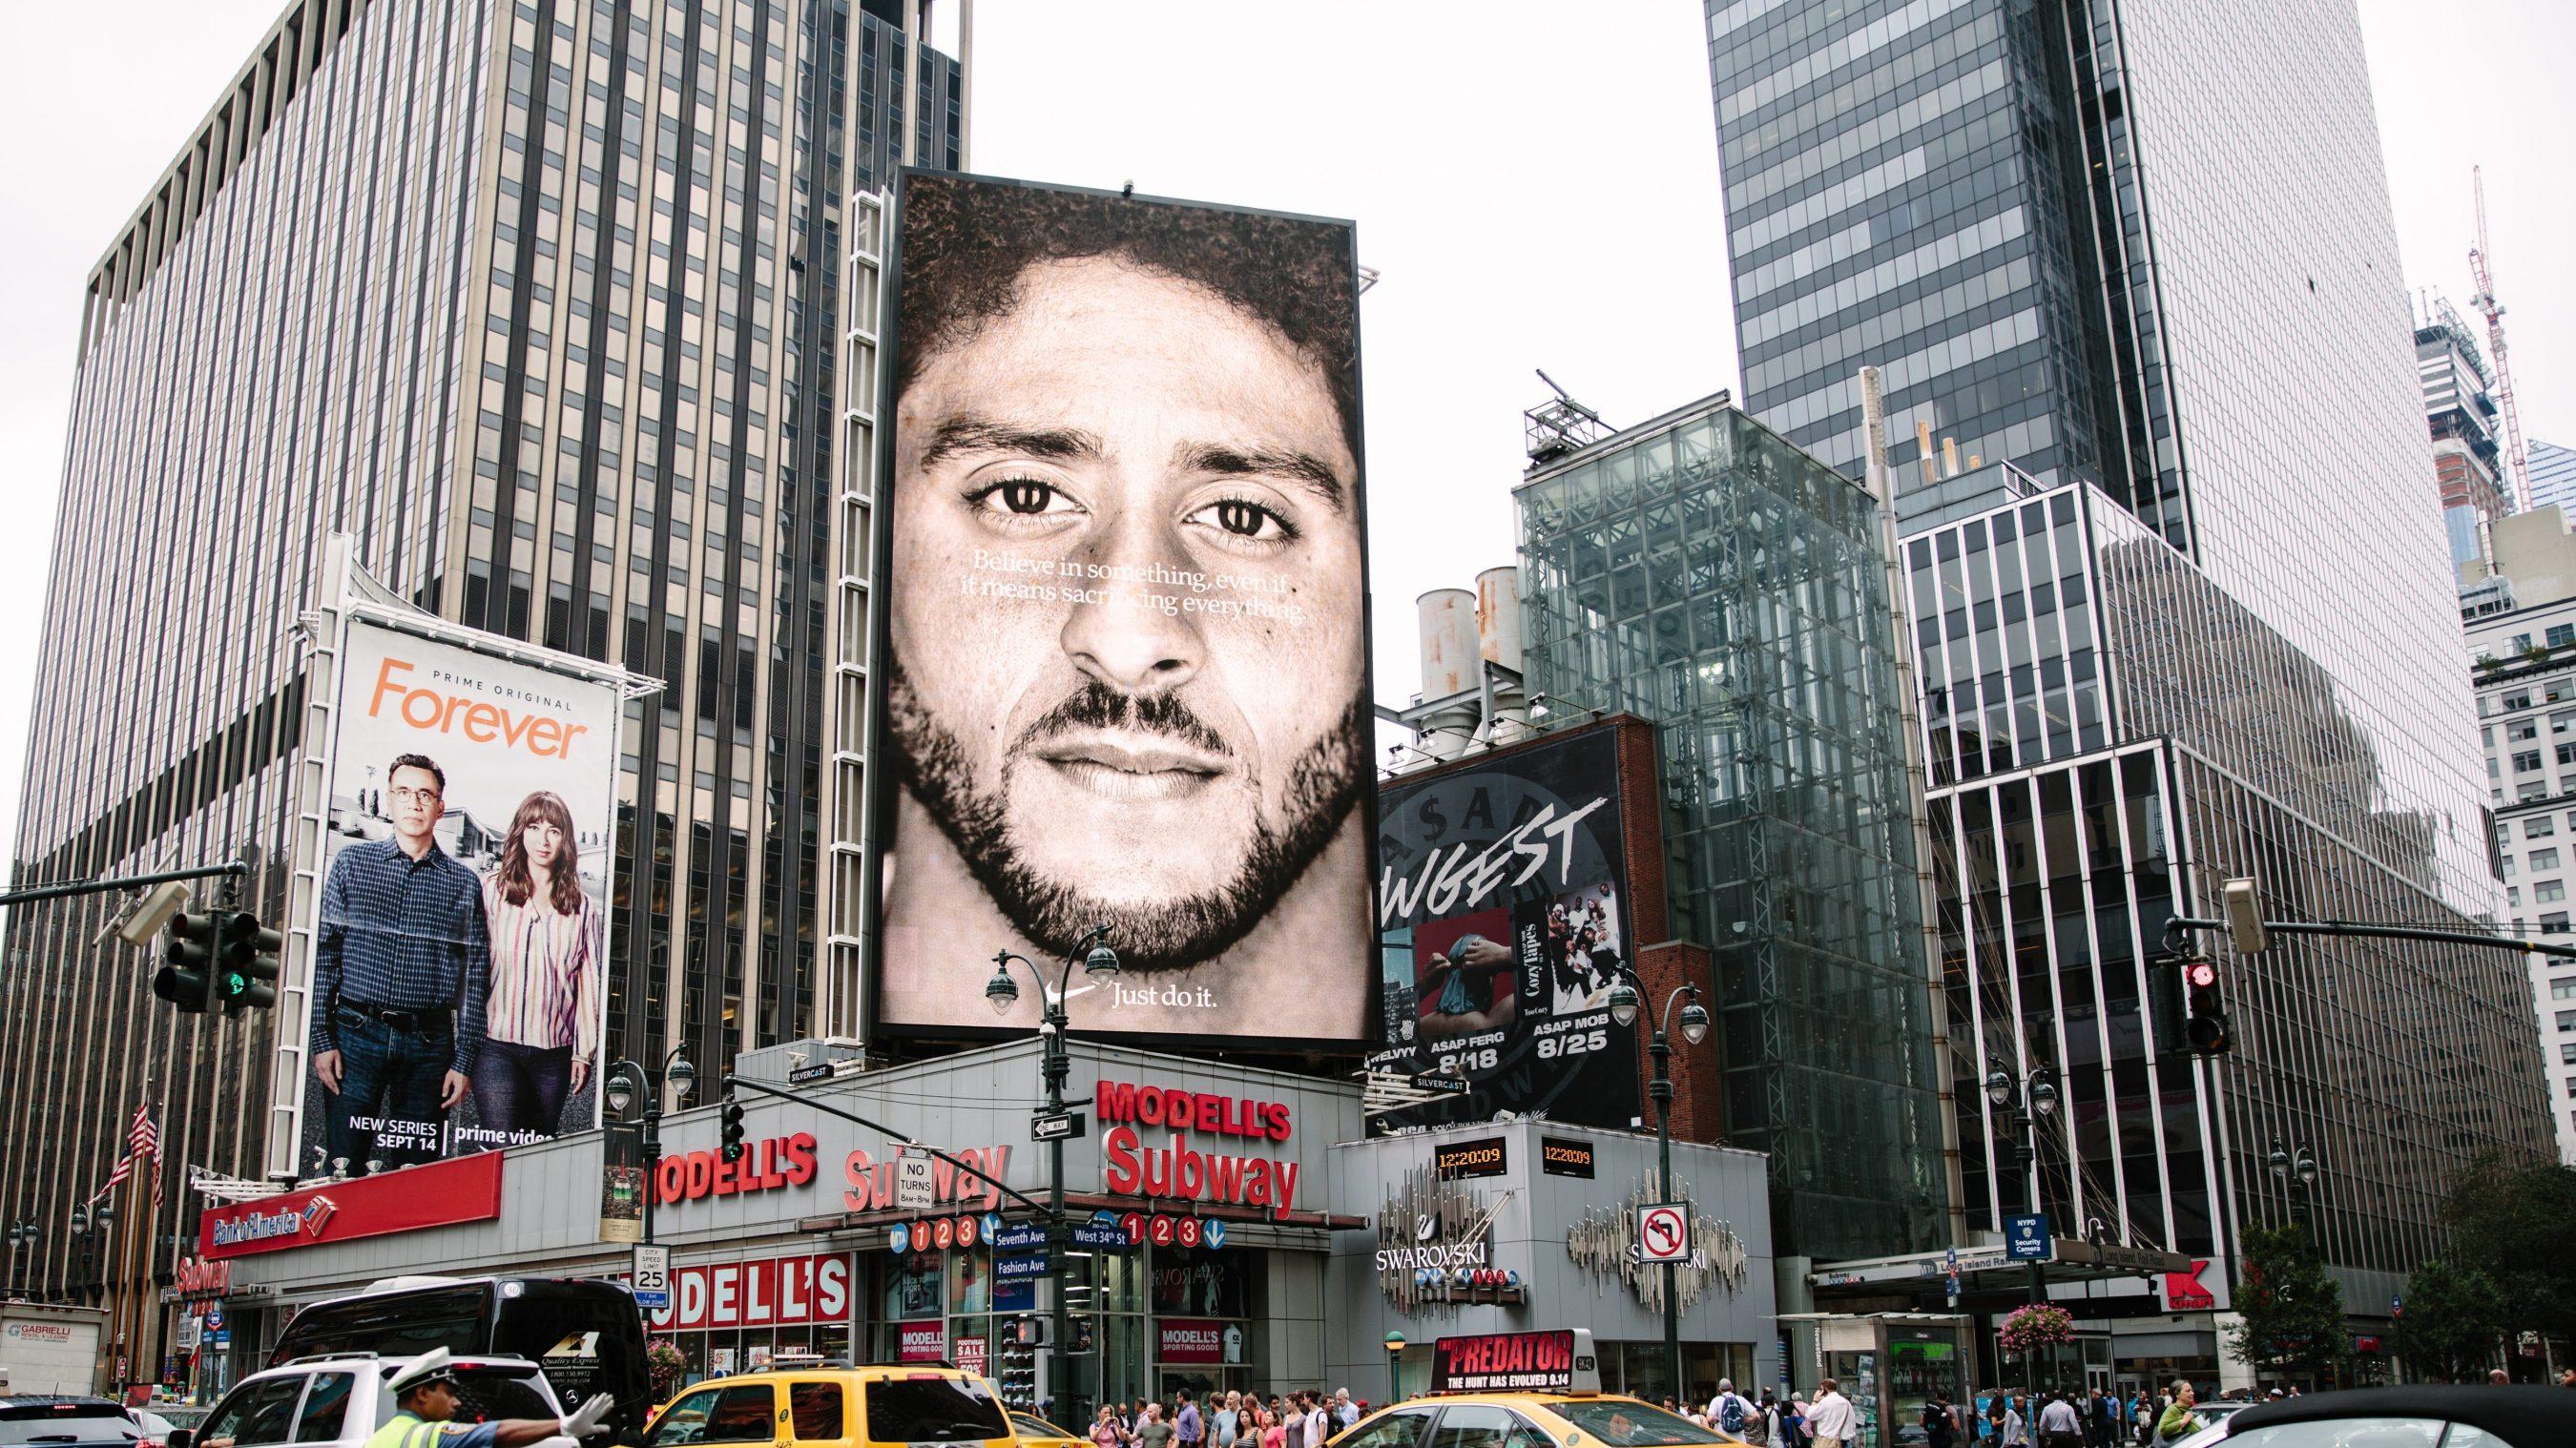 Criticism Of Nike Over Kaepernick Ad Prompts Some To Buy Its Gear